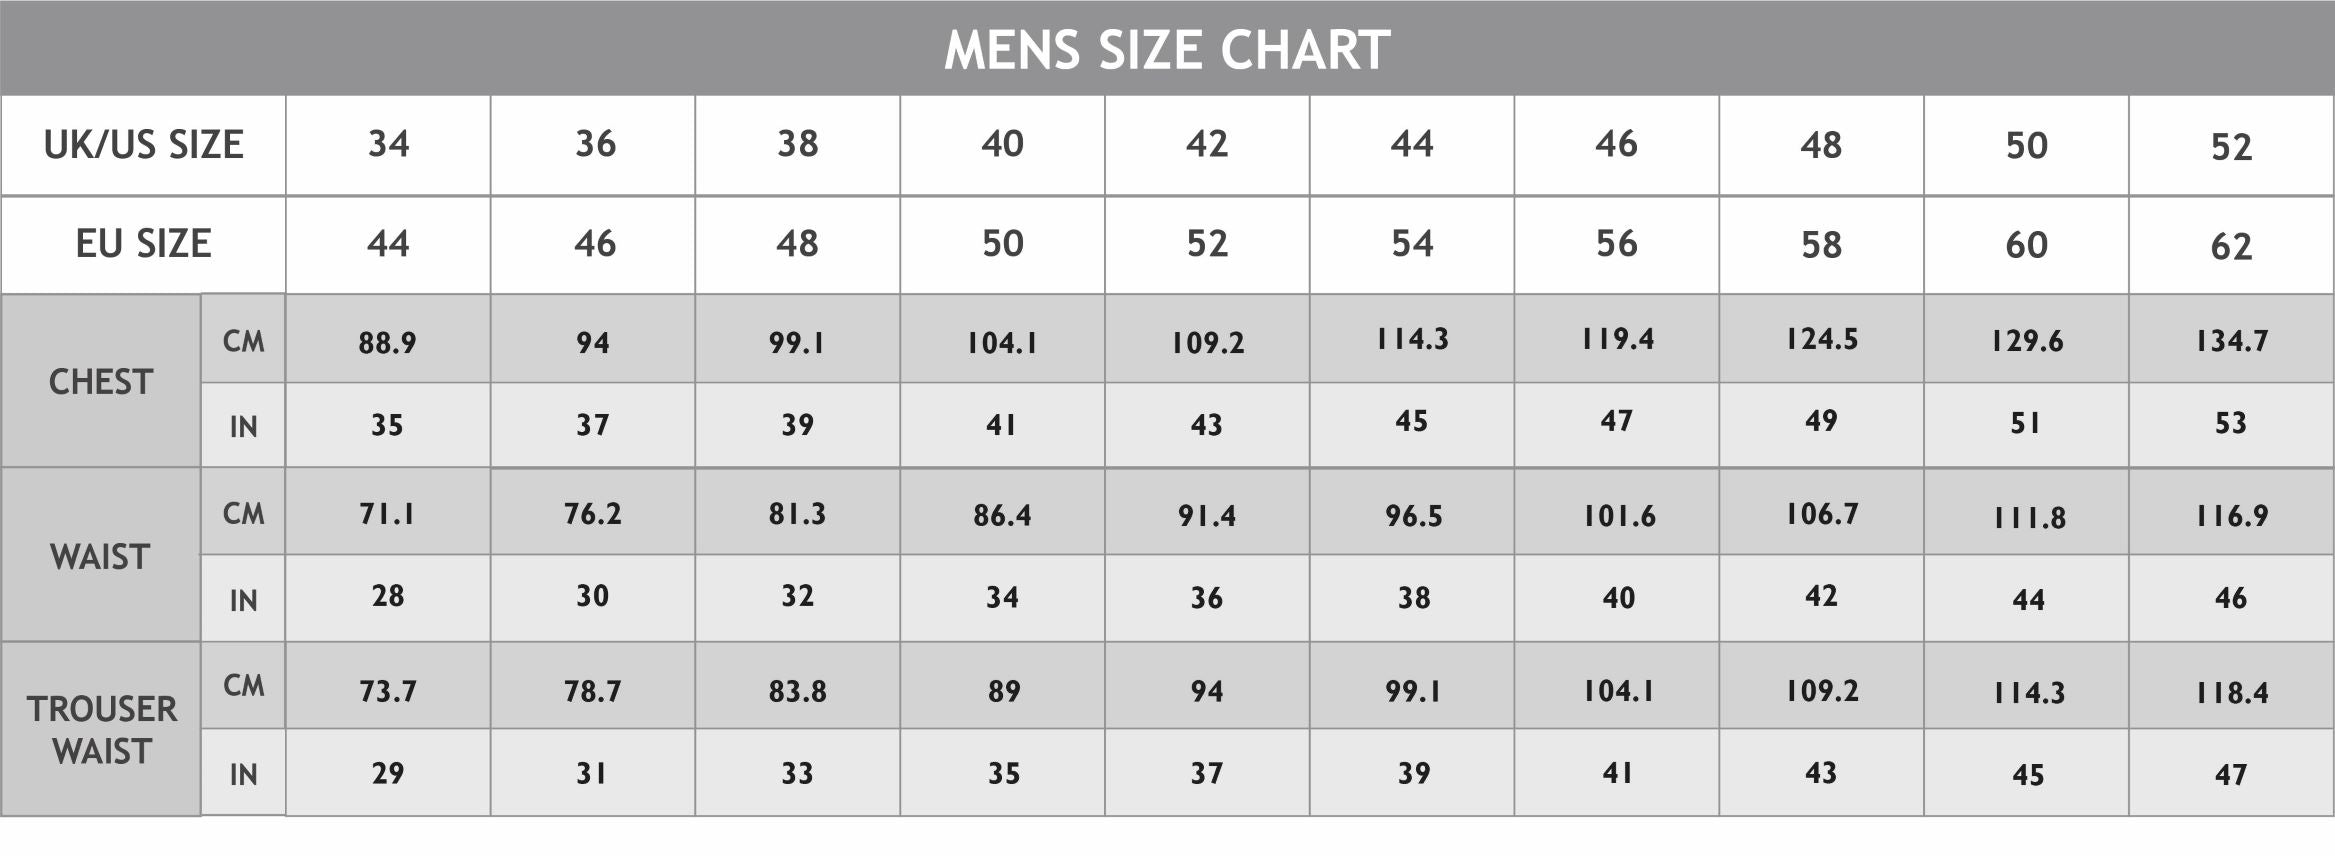 Mens Spa Size Chart